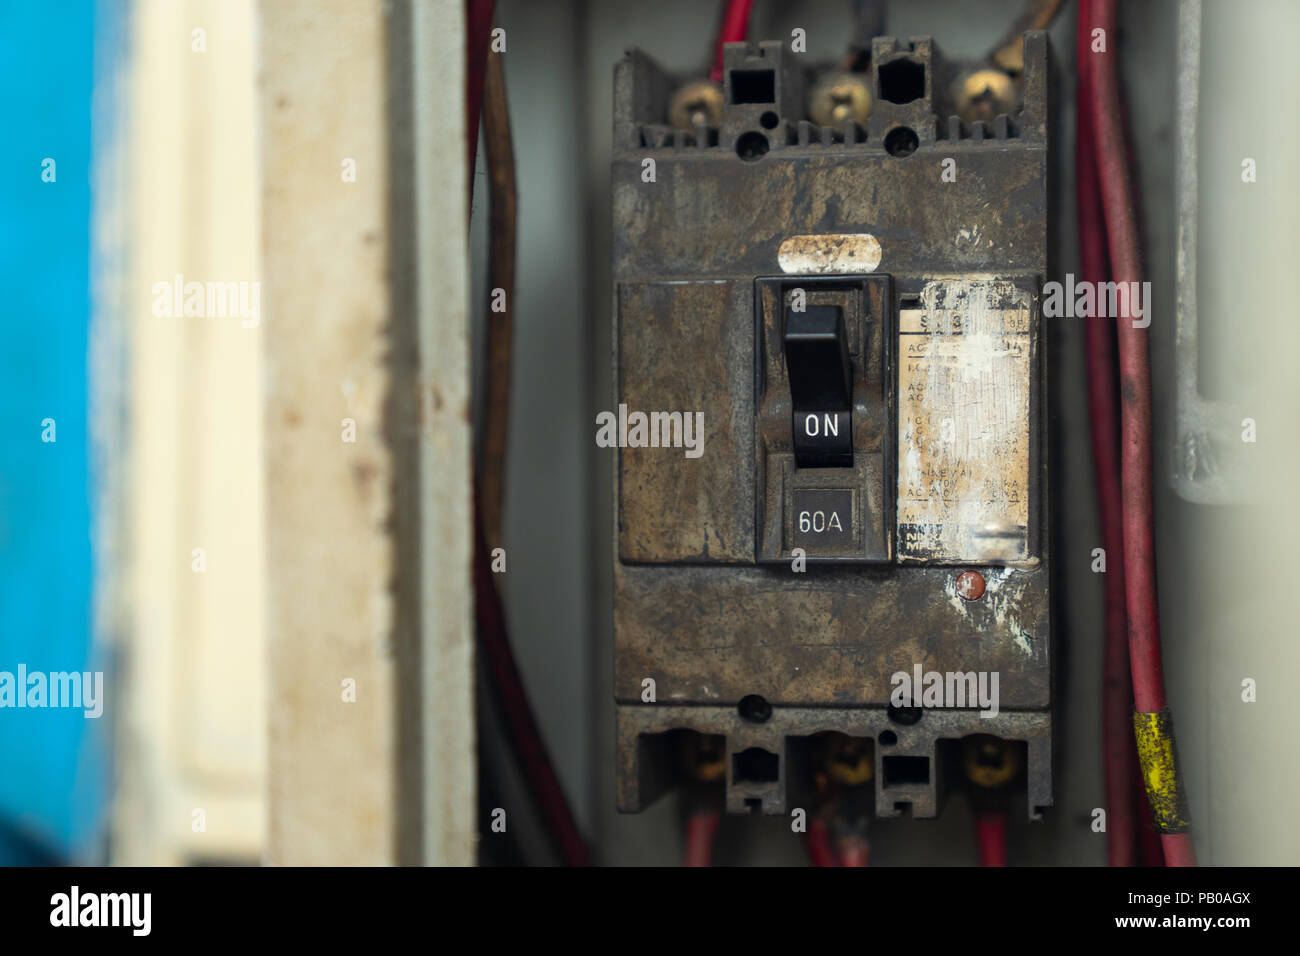 Electrical Panel Circuit Breakers Stock Photos Wiring Box Old And Dirty Switch In Electric